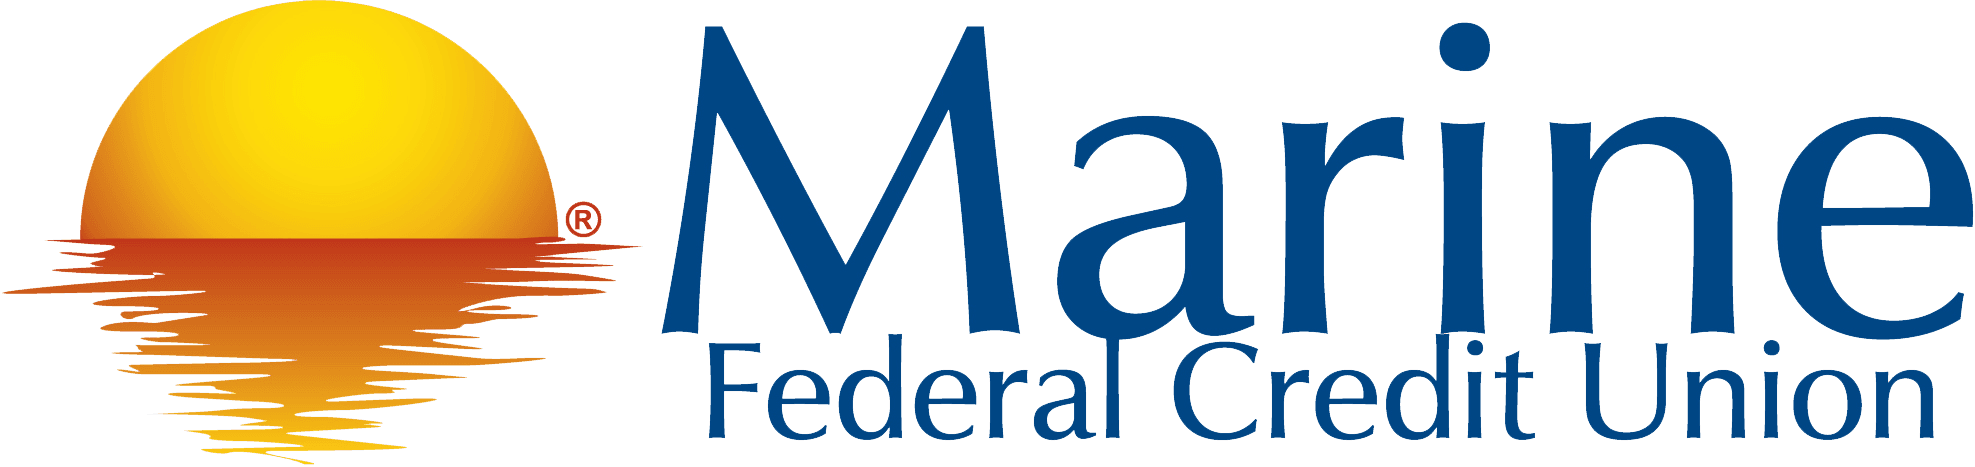 Marine Federal Credit Union logo